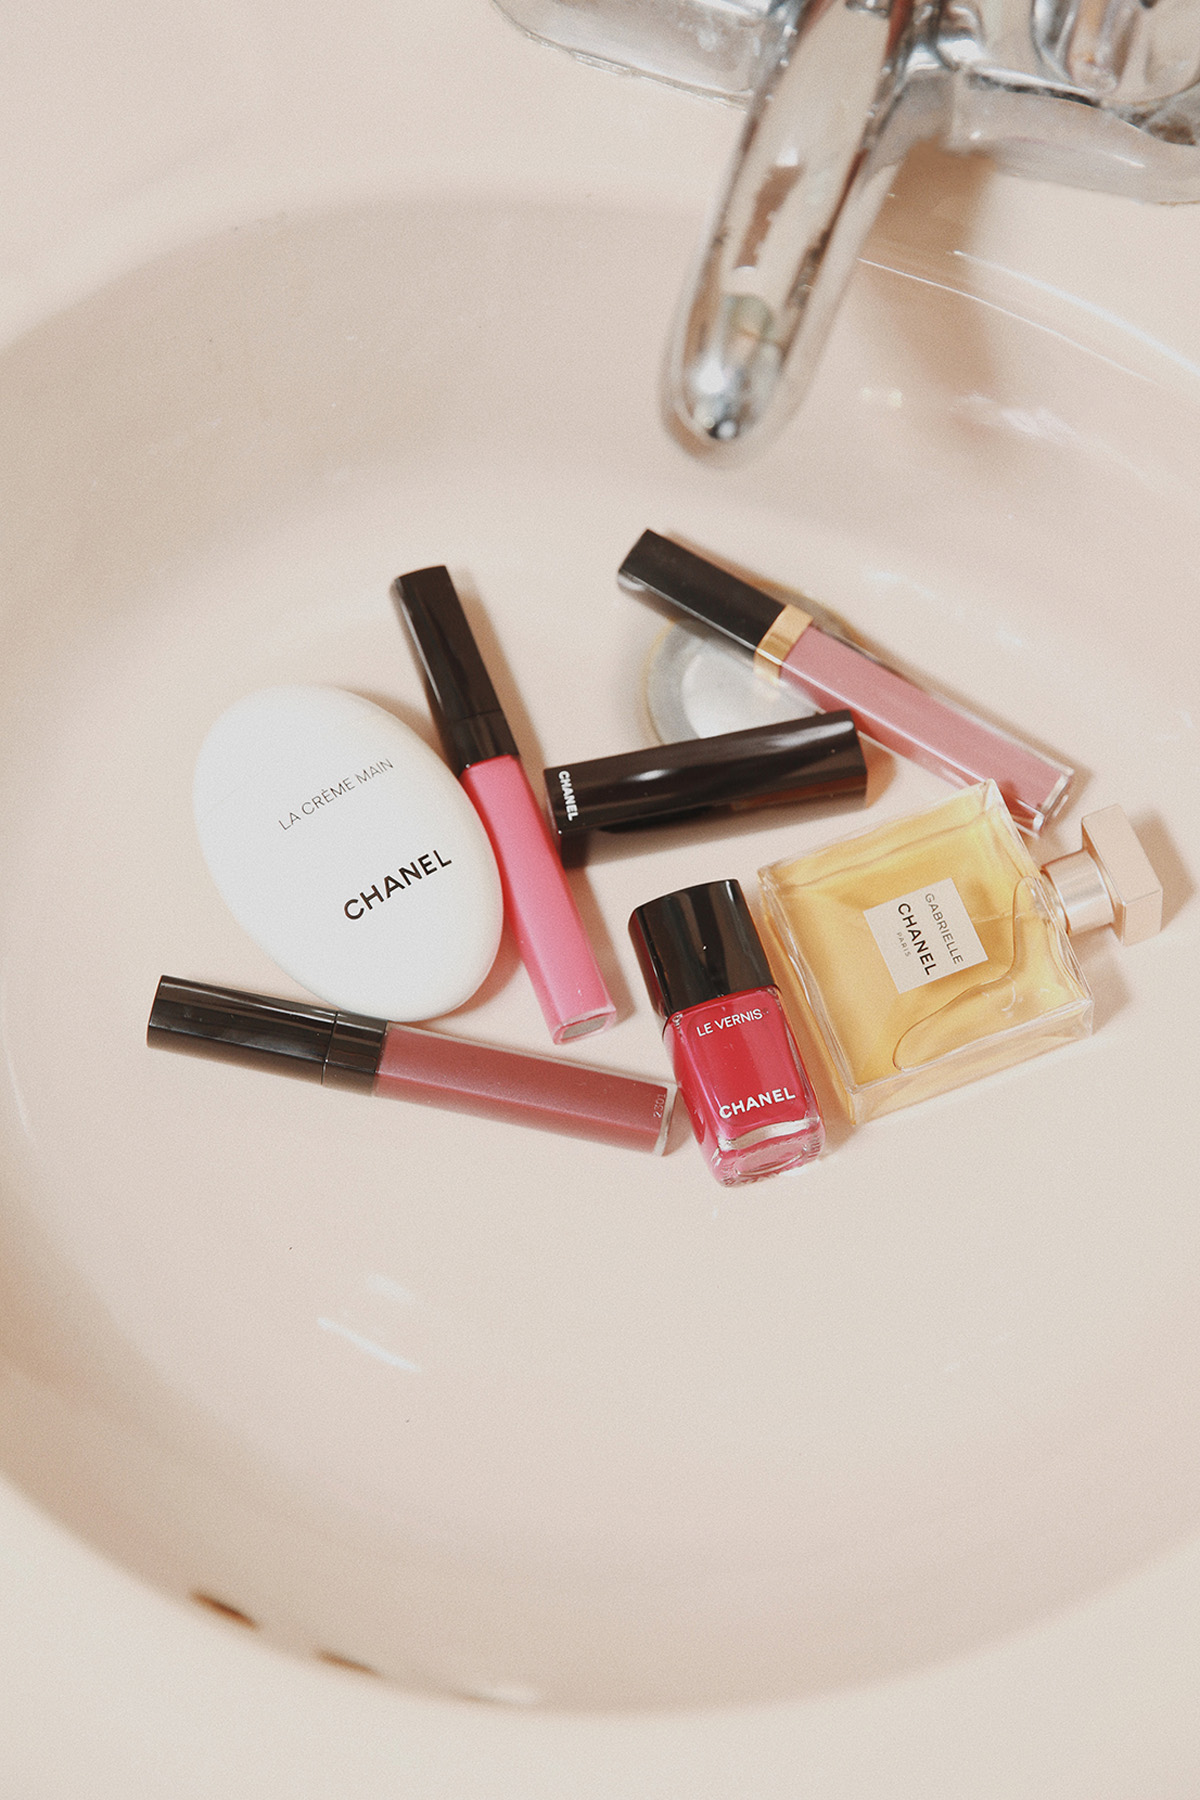 Ana Prodanovich writing about self-love and wearing CHANEL Beauty.